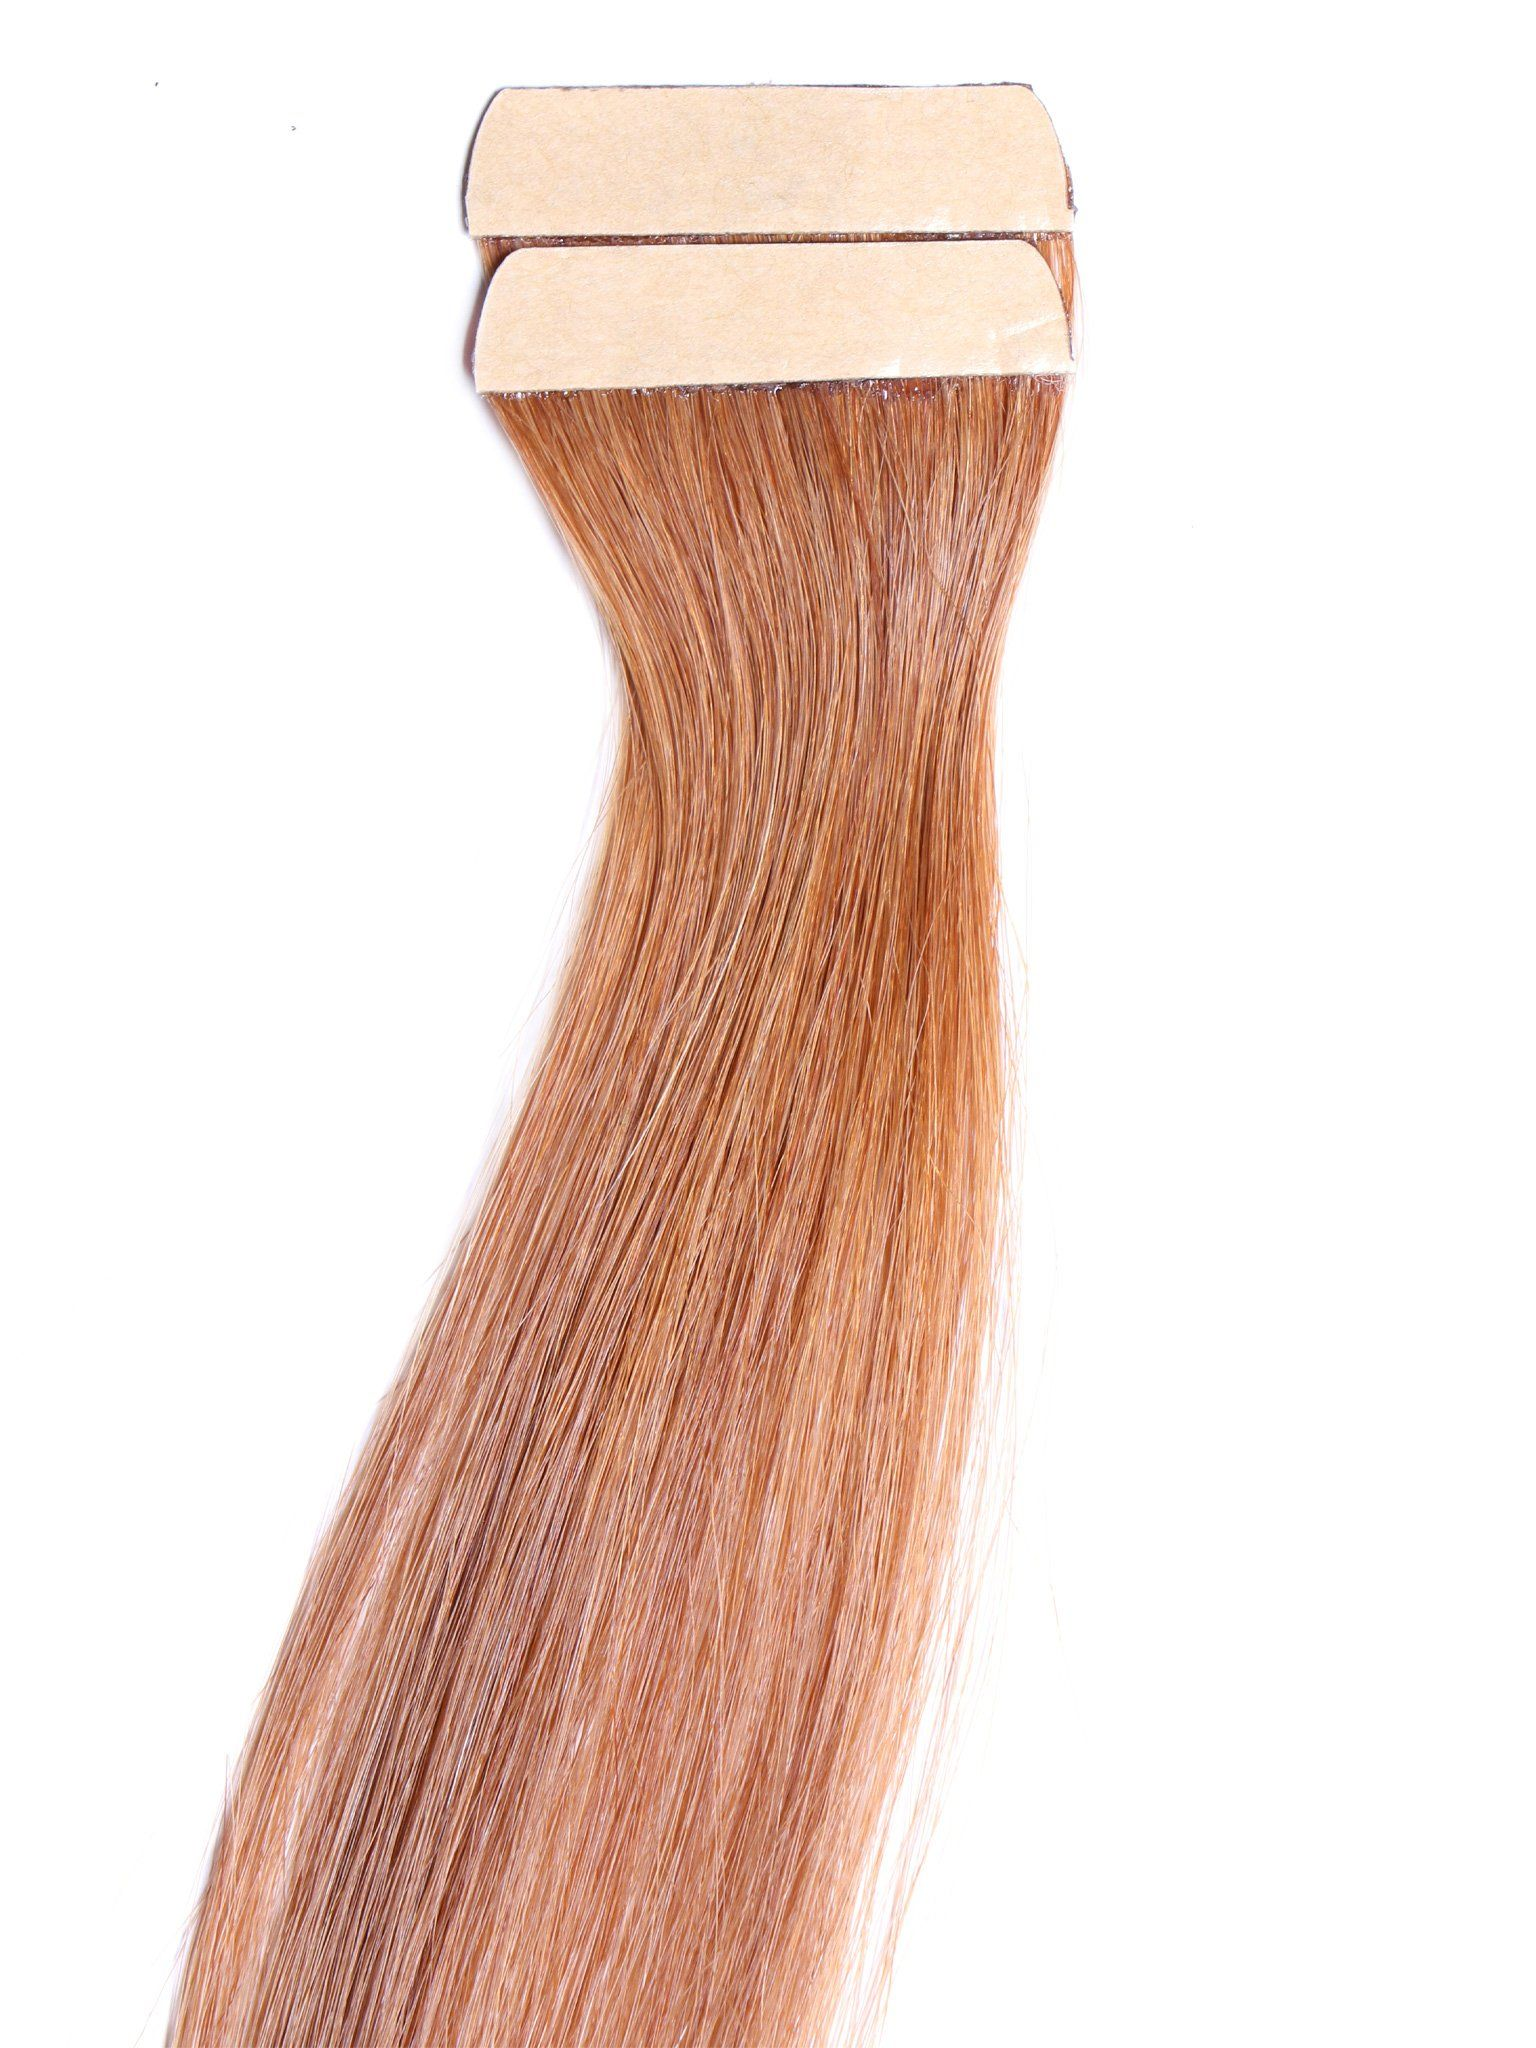 edfcdcac5d972ef10b9299e1f4d4dc22 - How Much Is It To Get Hair Extensions Done Professionally